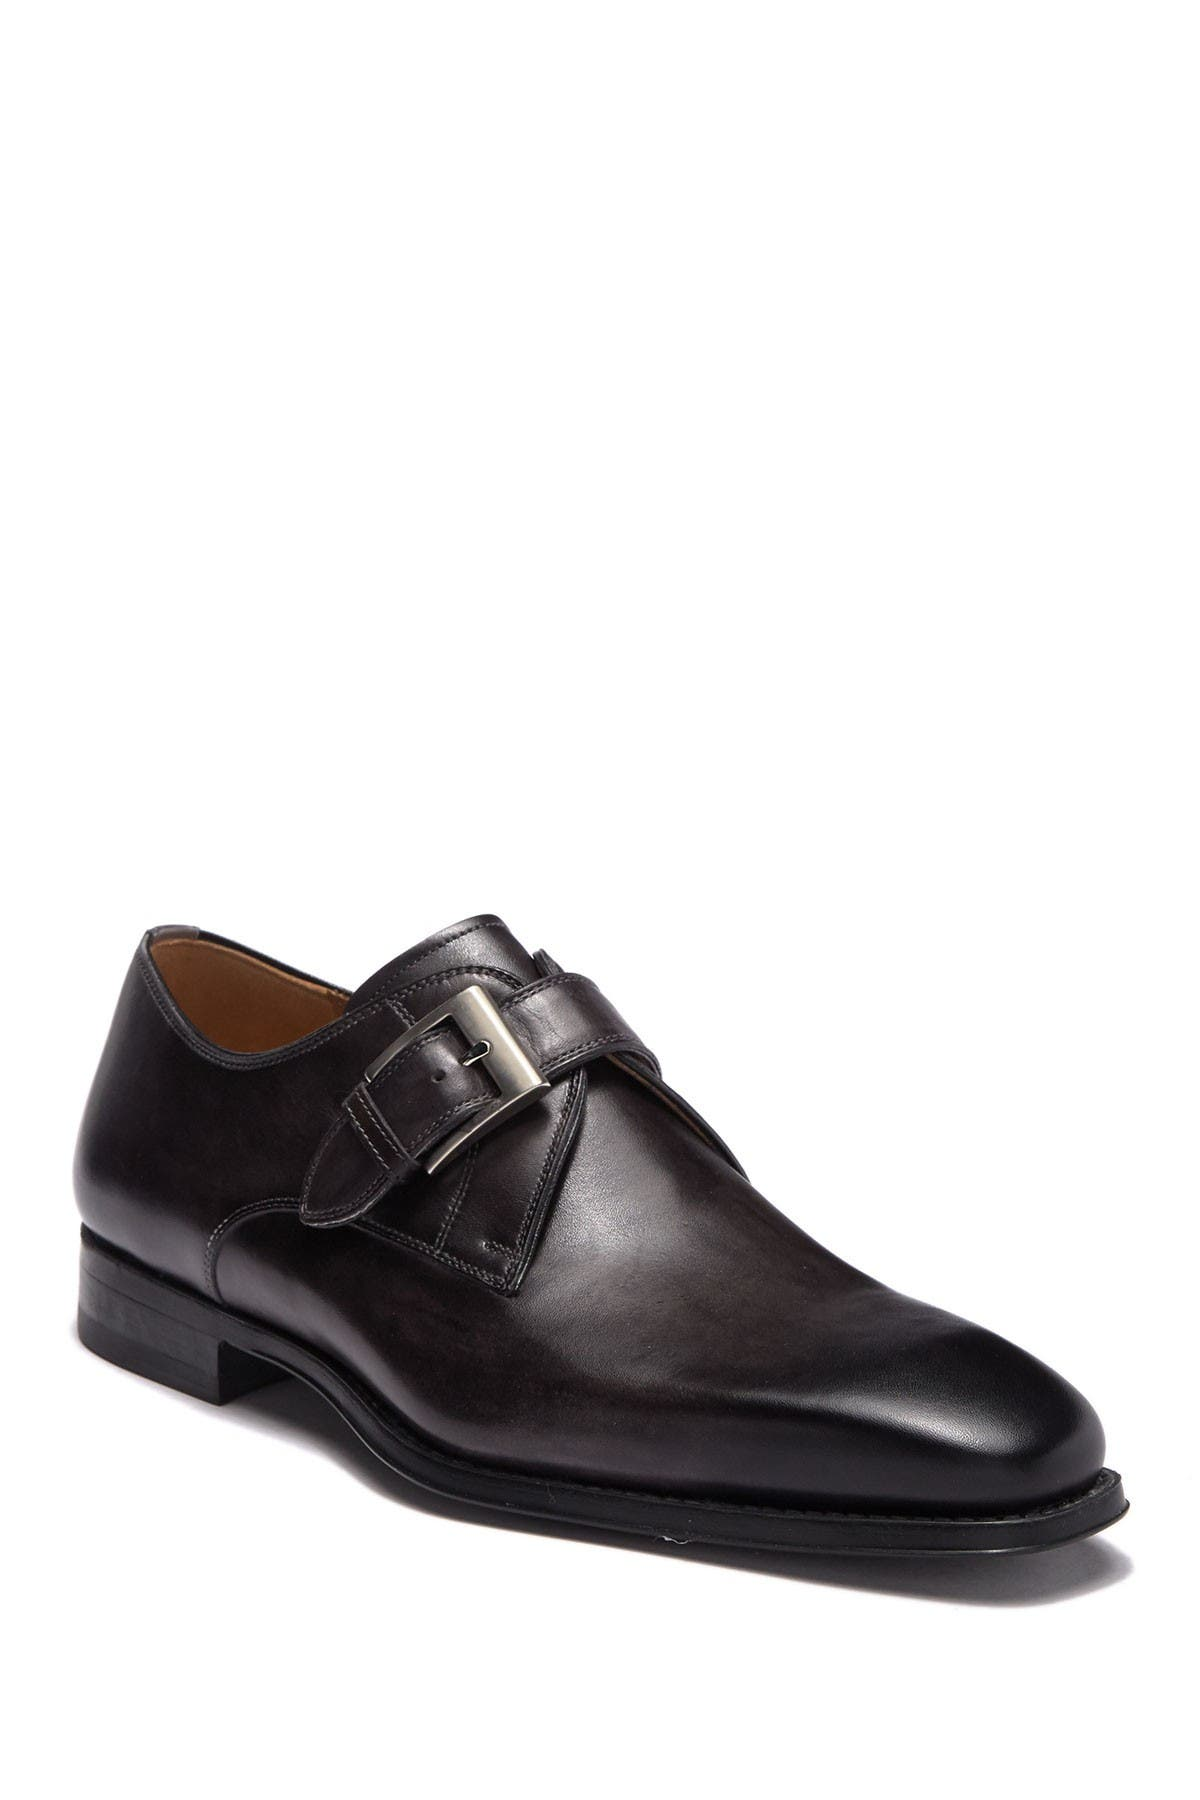 Image of Magnanni Tudanca Leather Monk Strap Loafer - Wide Width Available